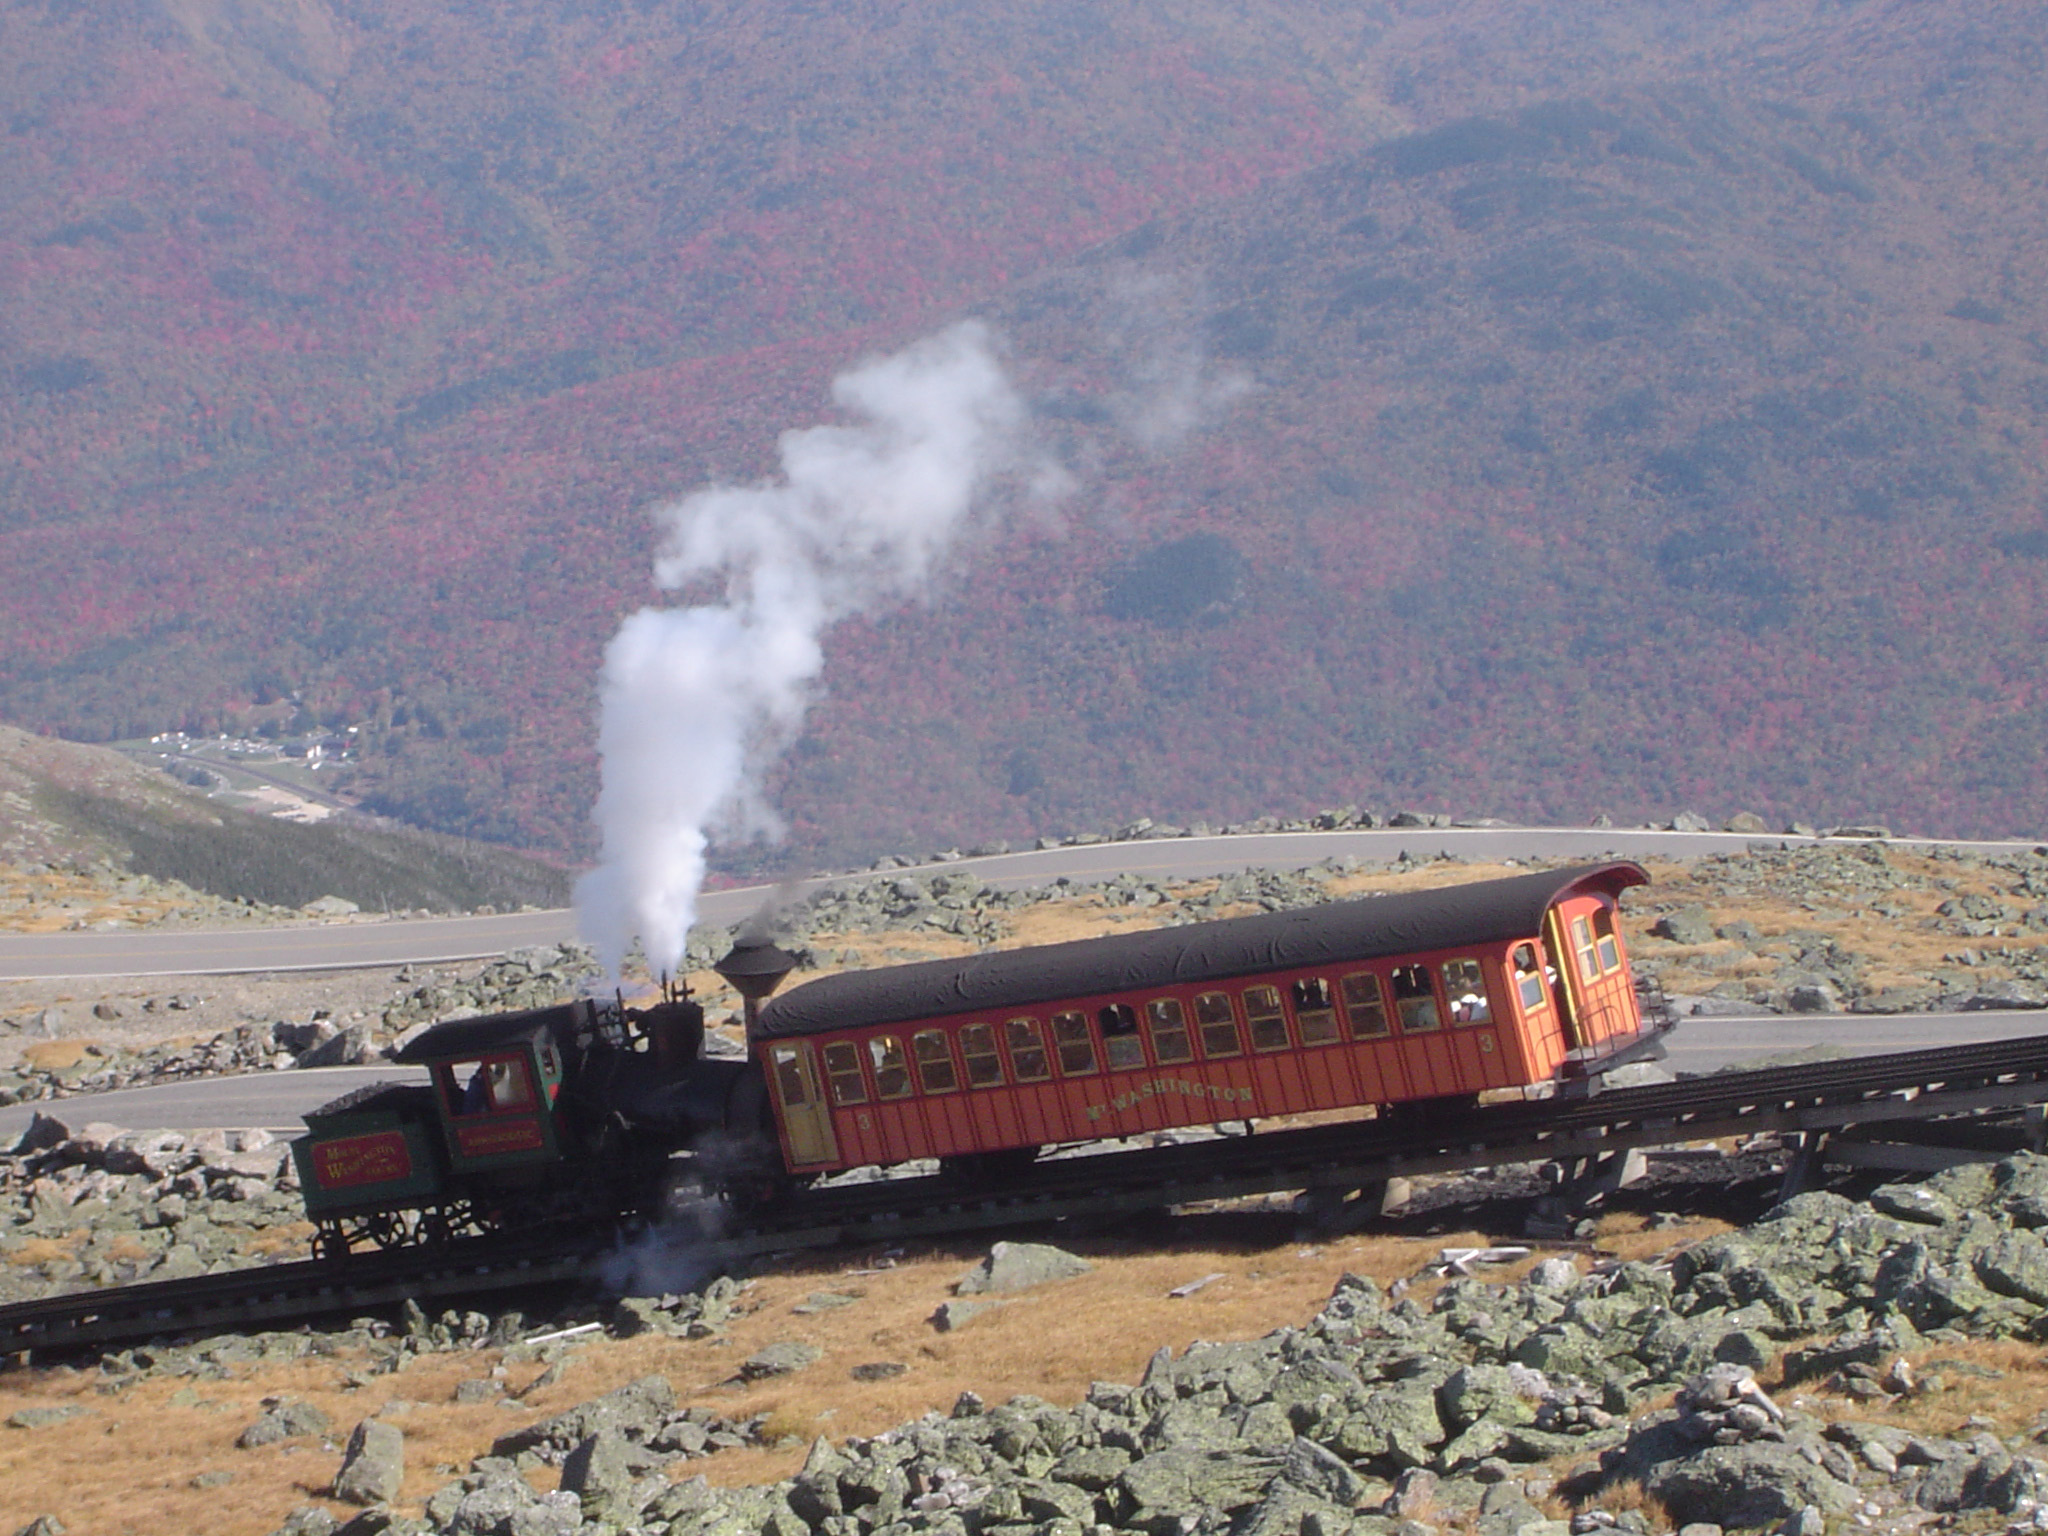 Vintage Steam Locomotive Passing Cog Railway on Rocky Landscape. Captured with Mountains Background.